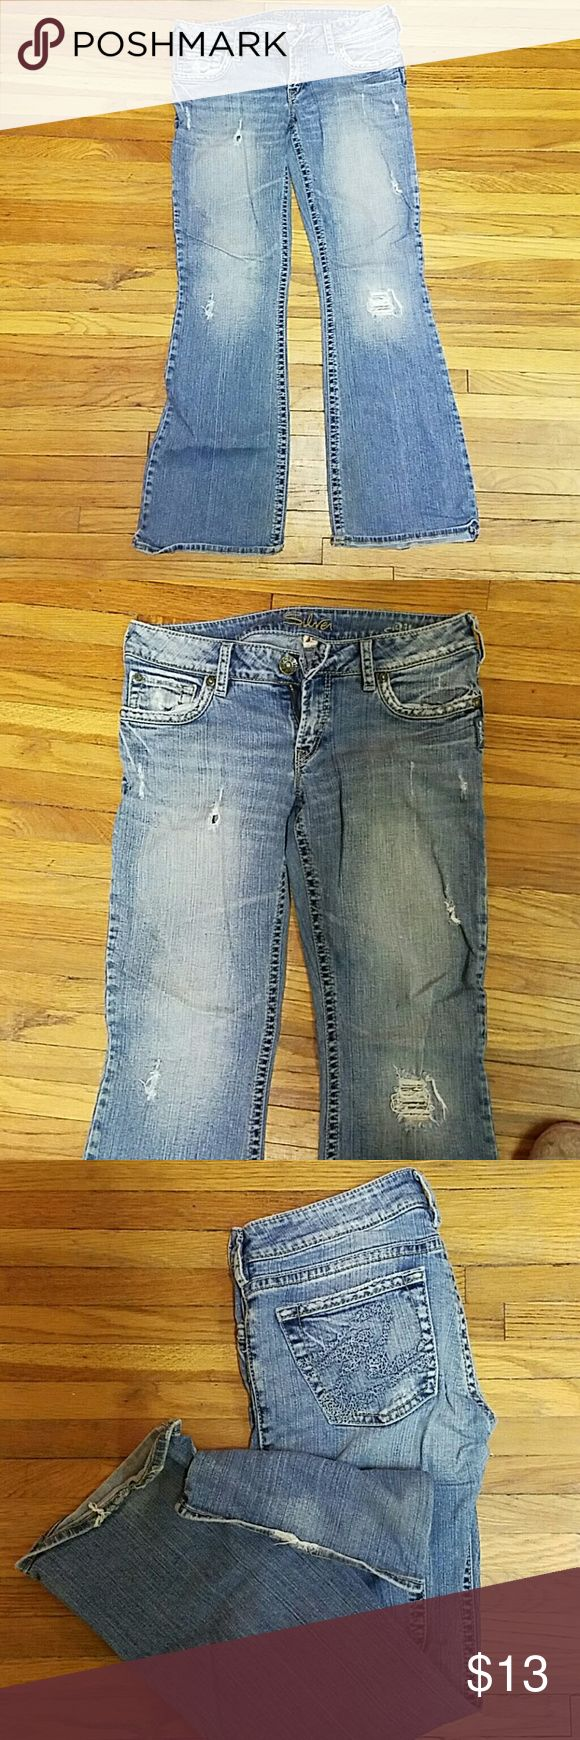 Silver jeans Womens silver jeans, slightly distressed. Slight wear to hems (see pic). Aiko 29/31 Silver Jeans Jeans Boot Cut